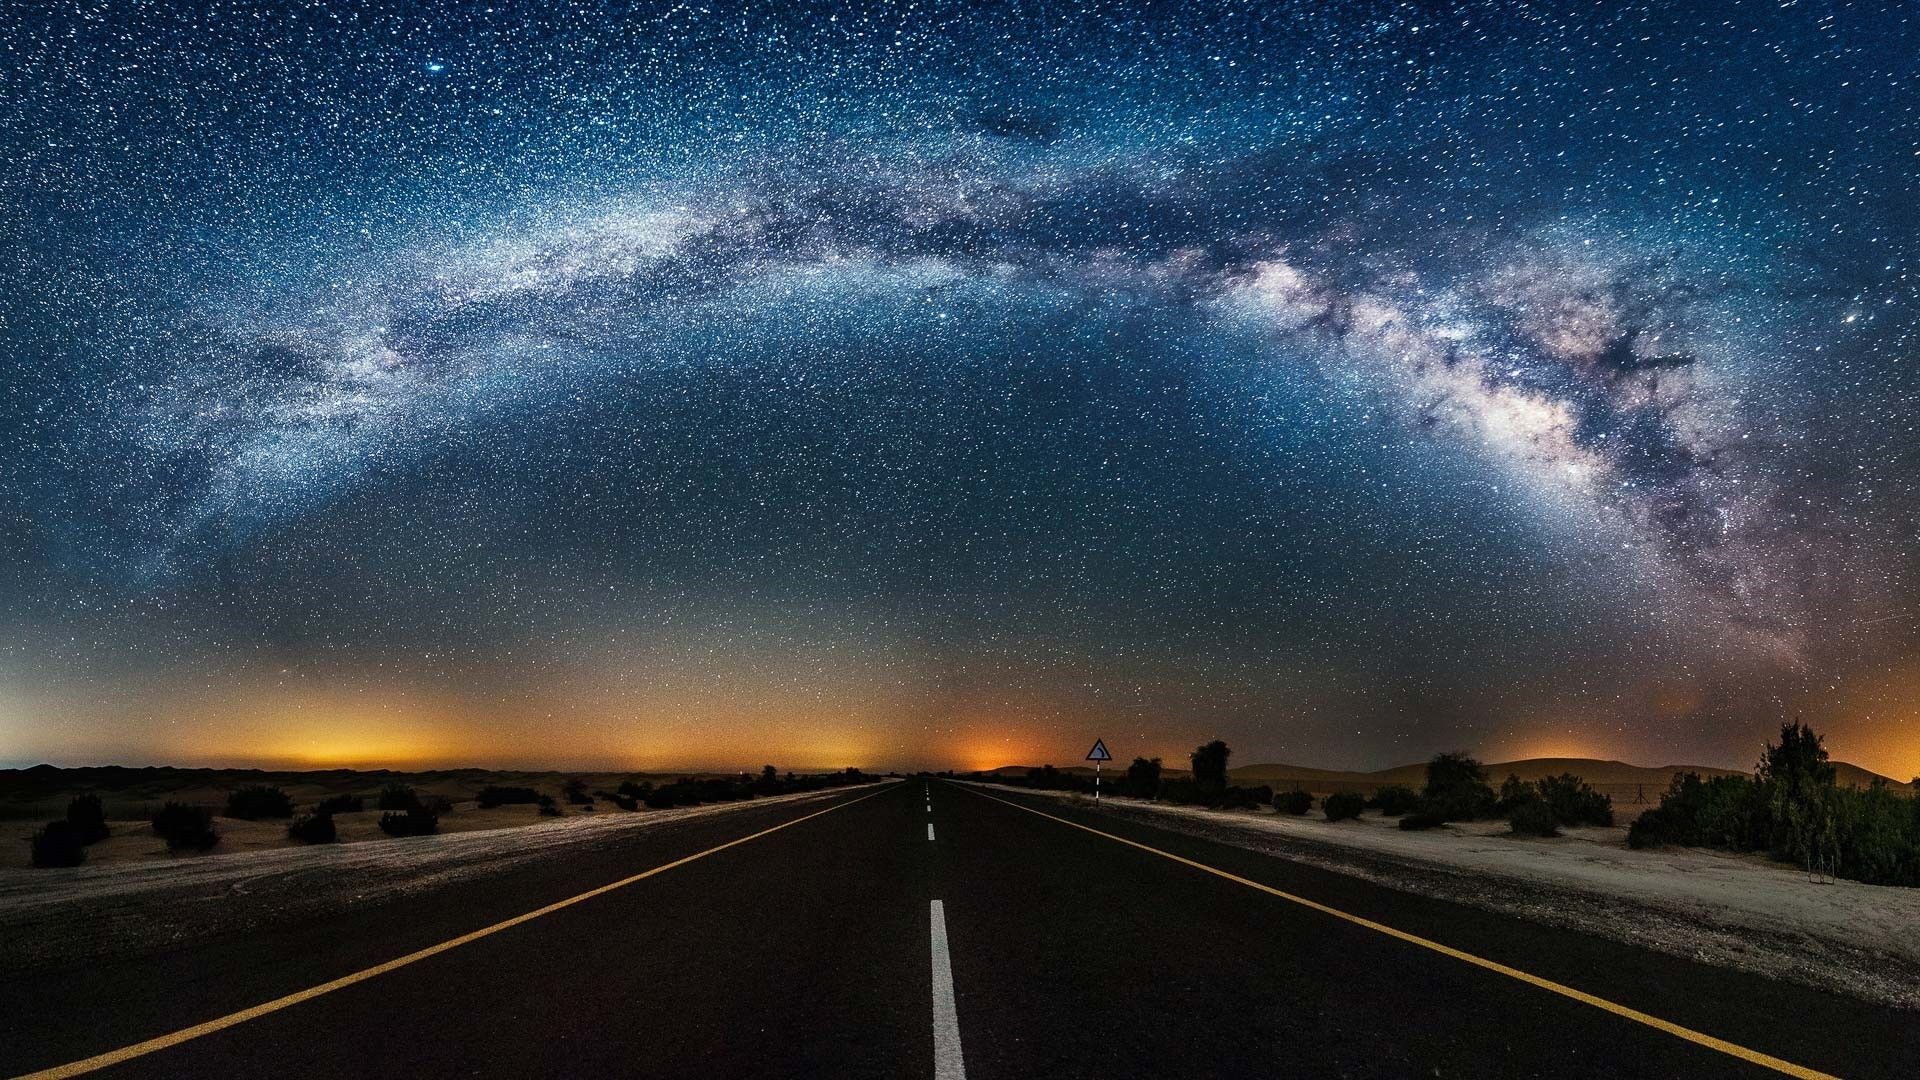 Starry Night Open Road Hd Wallpapers For Laptop Wallpaper Desktop Photography